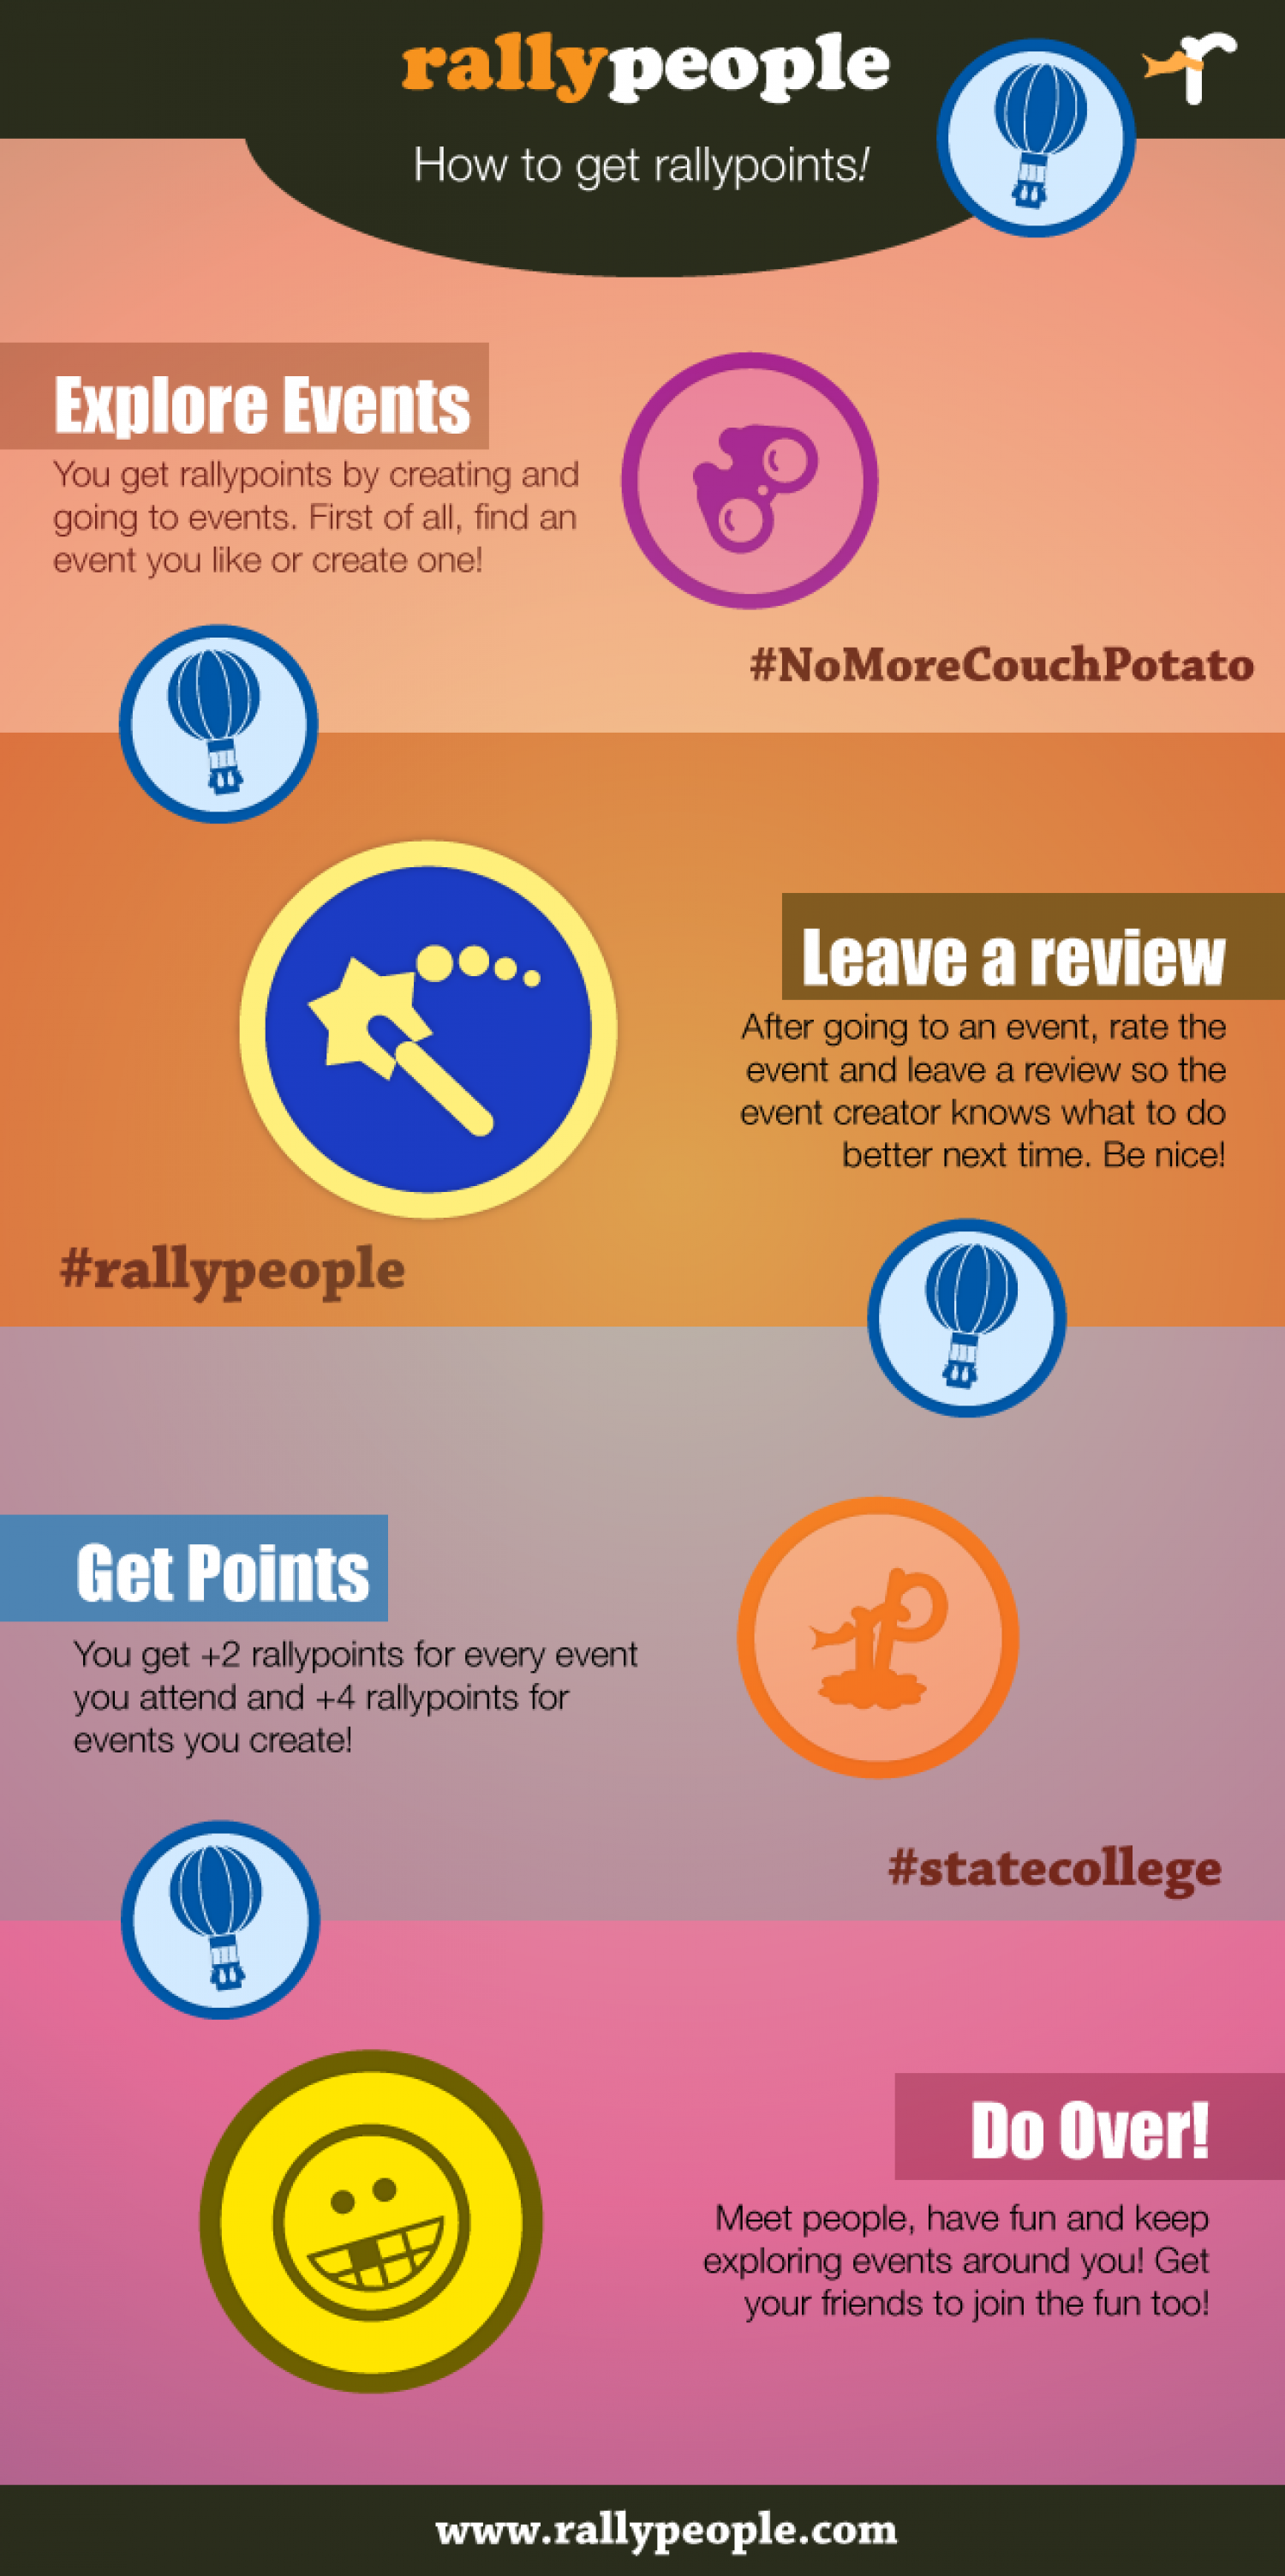 How to get Rallypoints Infographic